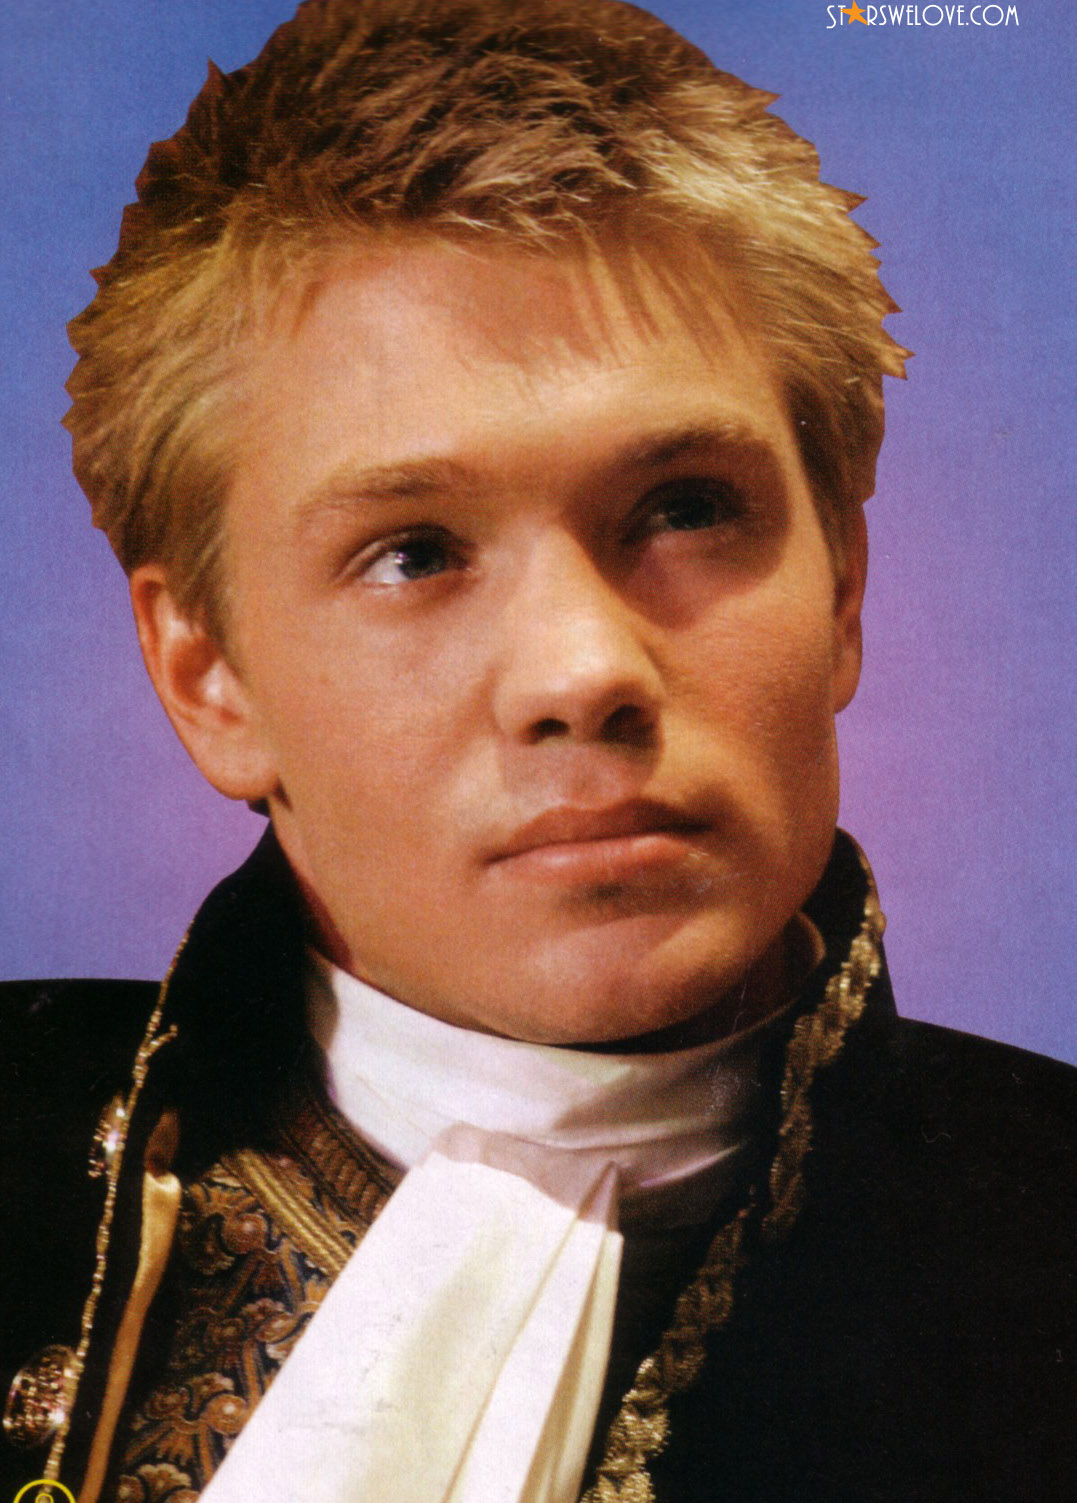 Chad Michael Murray photo (chad_michael_murray075, 1077 x 1503 pixels, 319 kB)